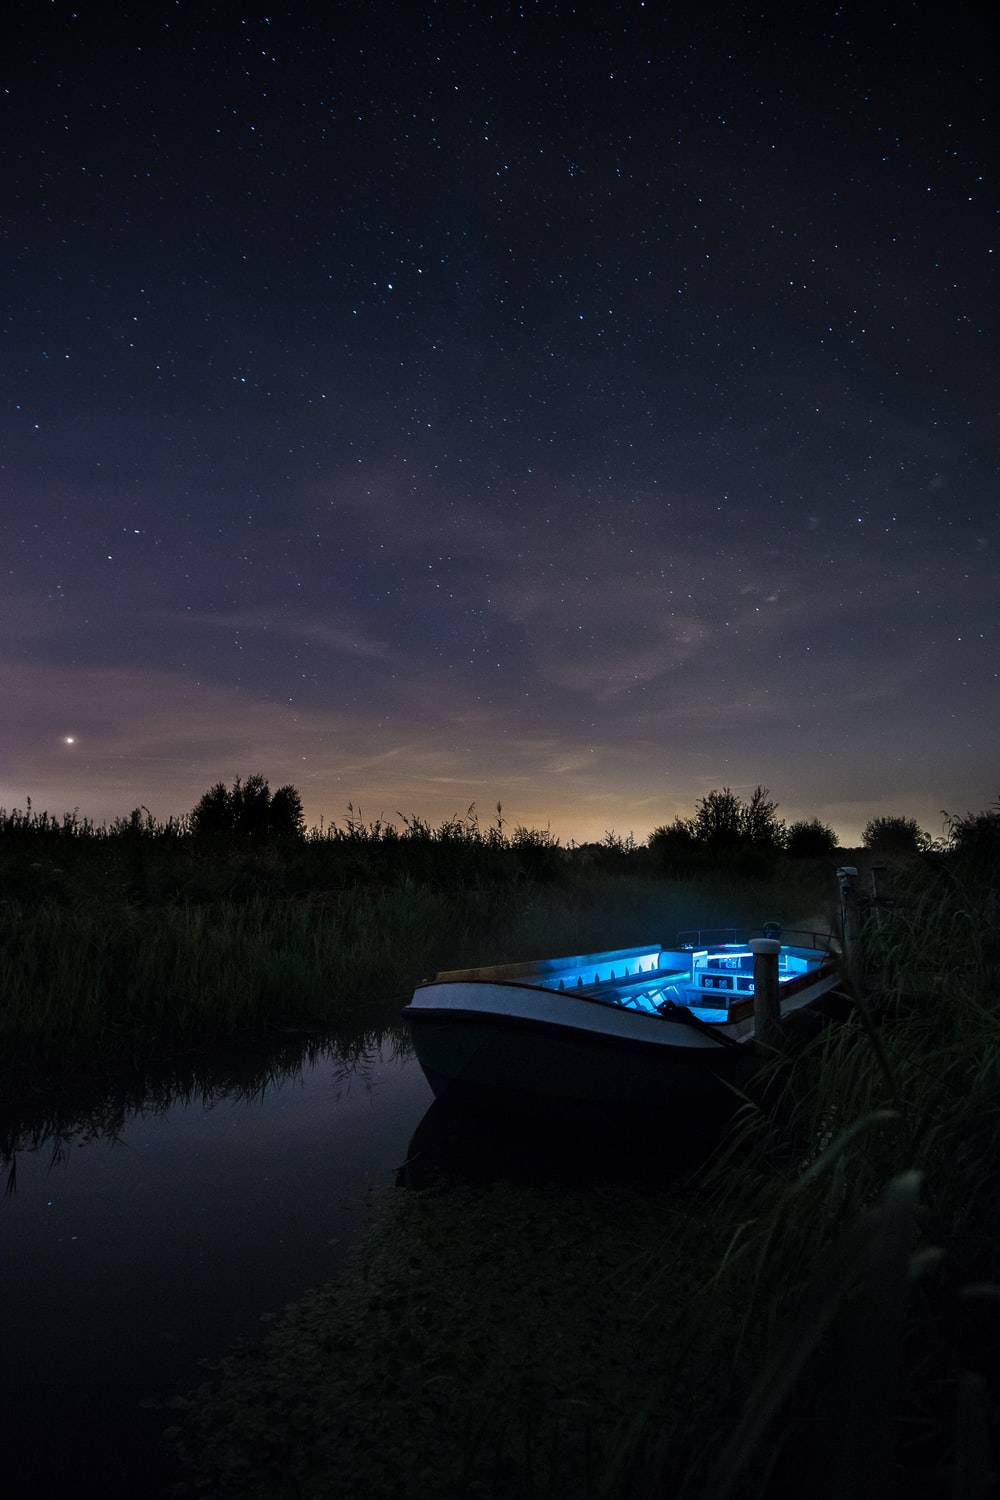 blue and white boat on river between trees at night